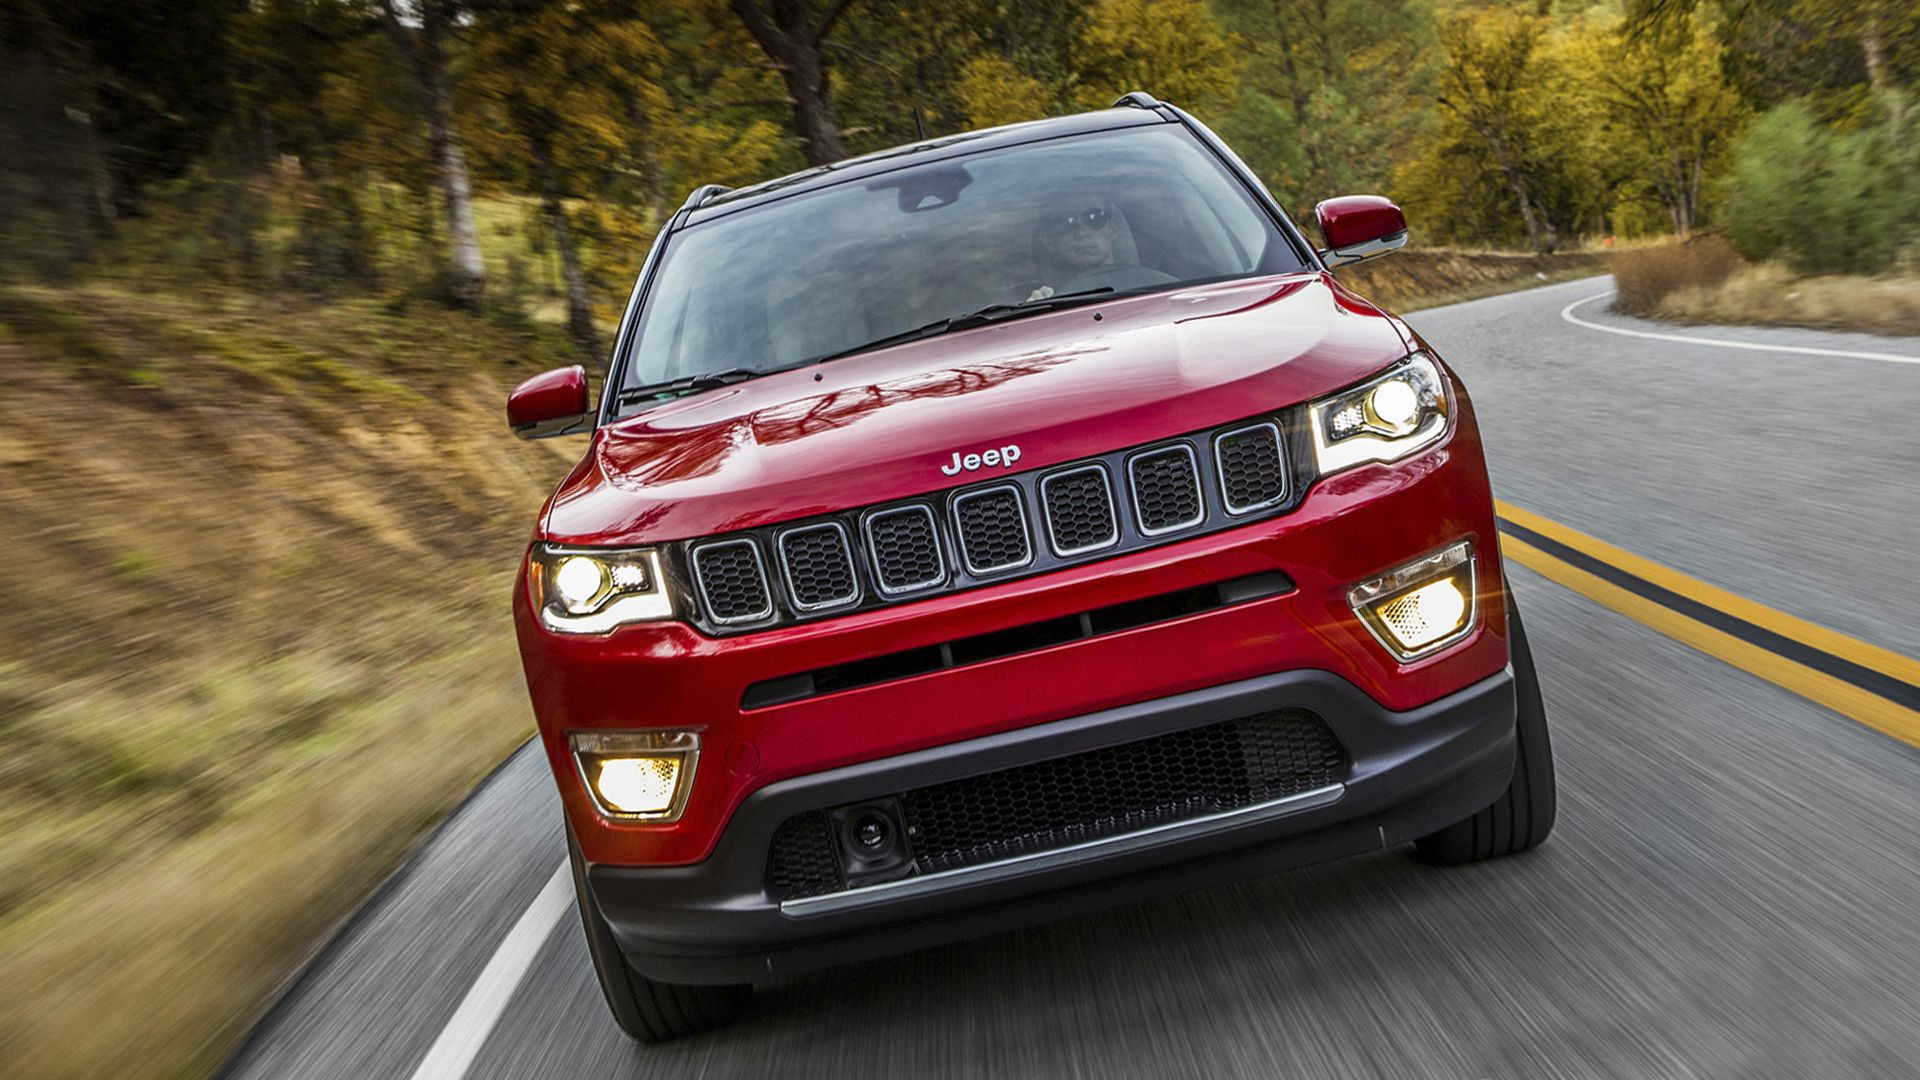 2019 Jeep Compass Wallpaper Hd Desktop Jeep Compass Compass Wallpaper Jeep